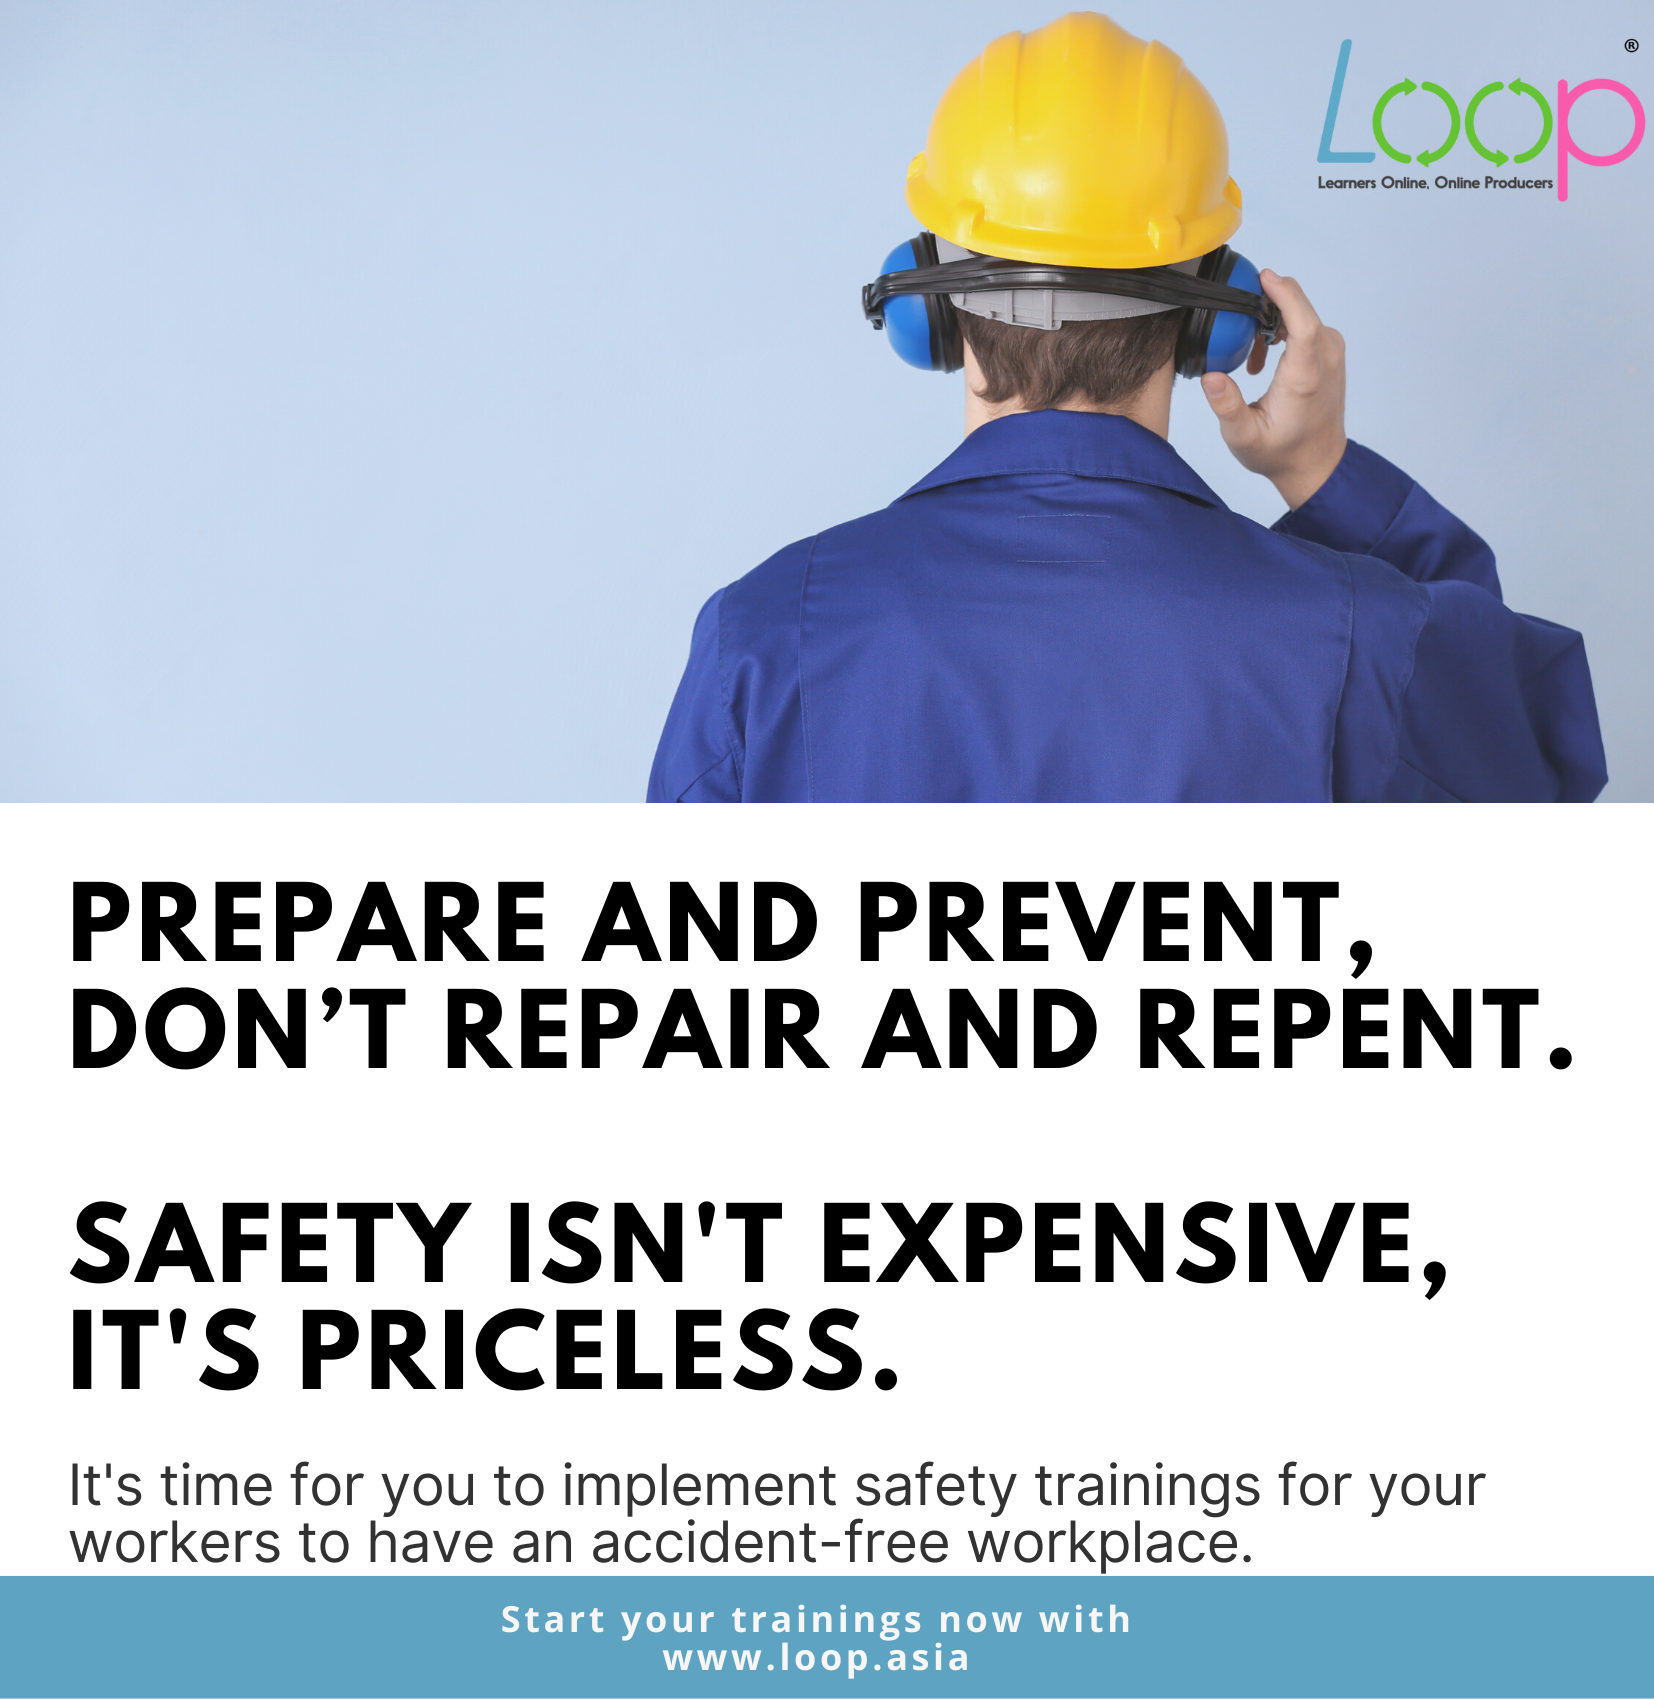 Protect Your Workers With Safety Training